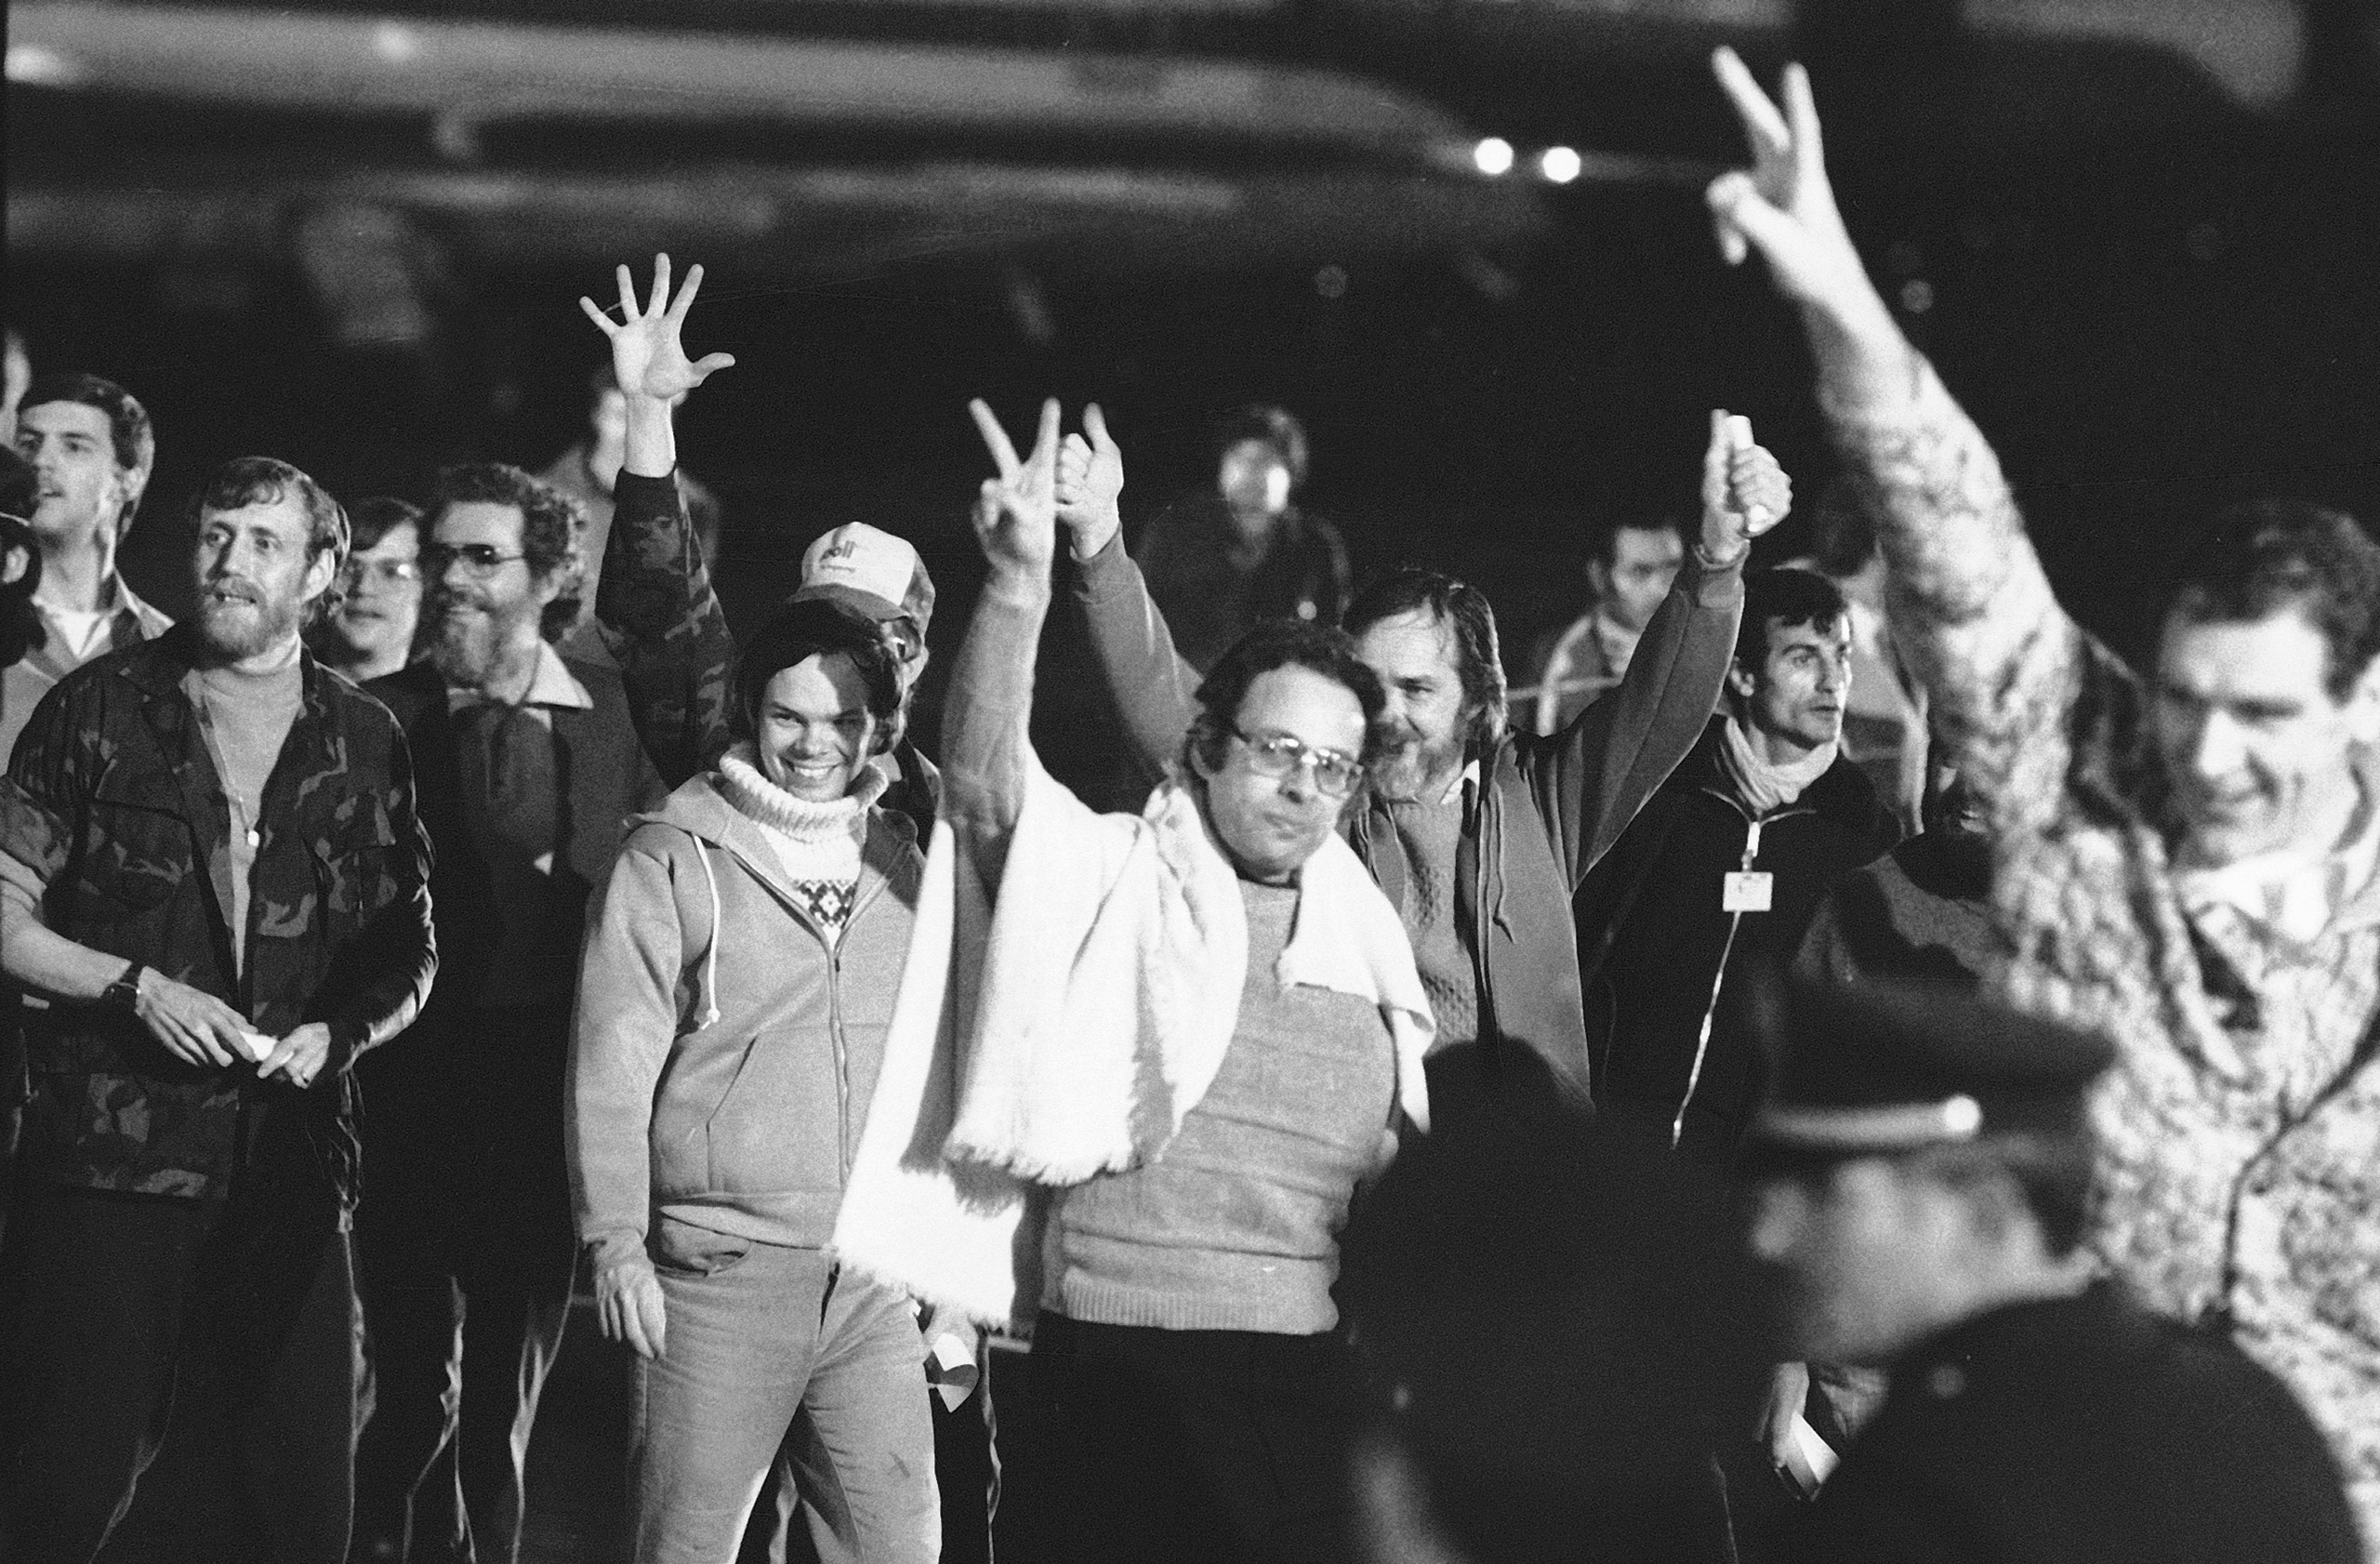 A group of American hostages give the victory sign as they emerge from an Algerian aircraft in Algiers after their flight from Teheran where they had been held captive for 444 days in Iran, Jan. 21, 1981.